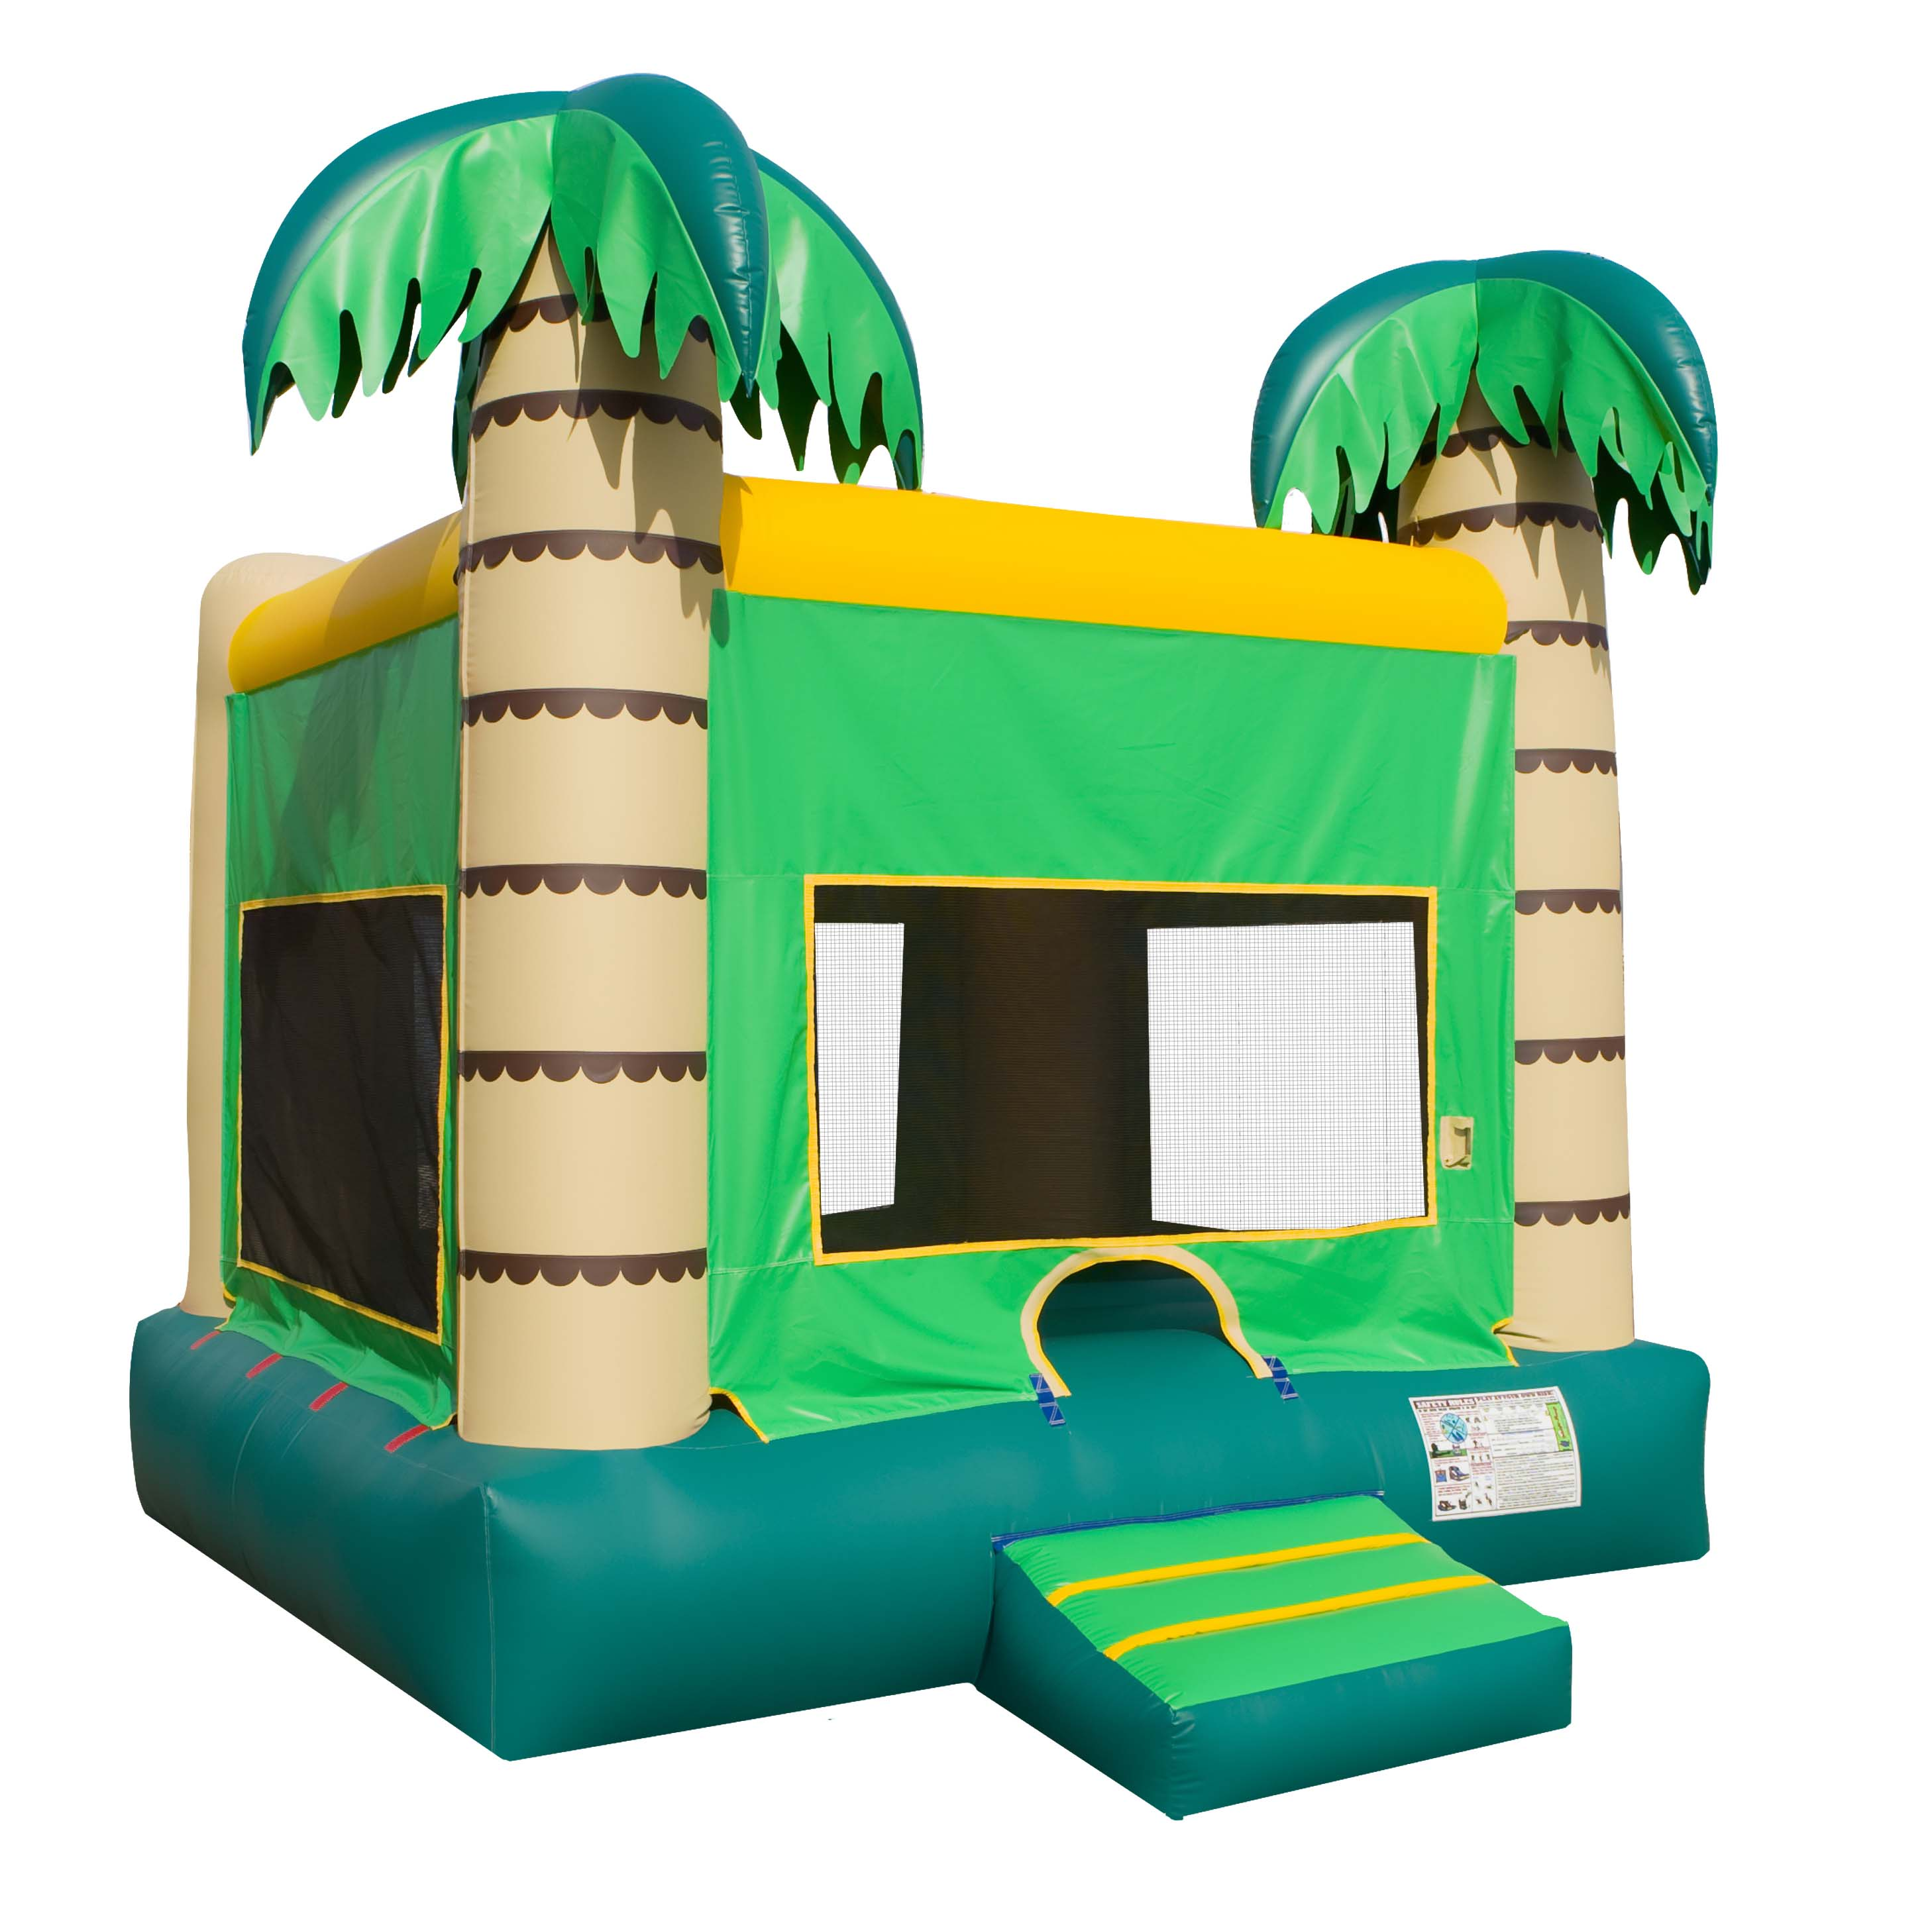 Evans NY bounce house rental